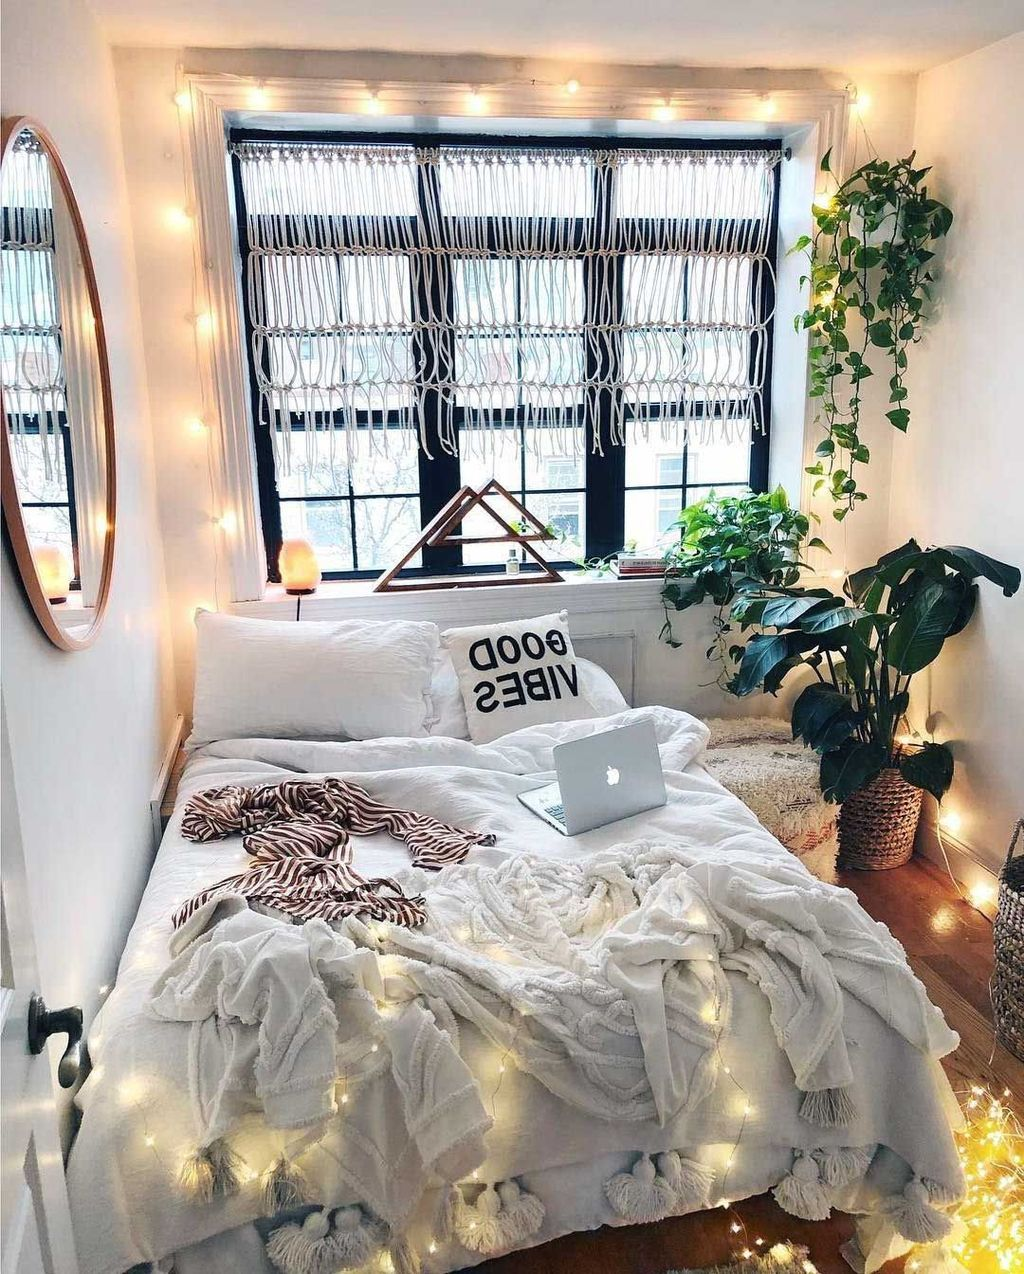 34 Inspiring Diy Bedroom Decor Ideas You Can Try Aesthetic Apartment Apartment Bedroom Decor Master Bedrooms Decor Bedroom decoration diy bedroom